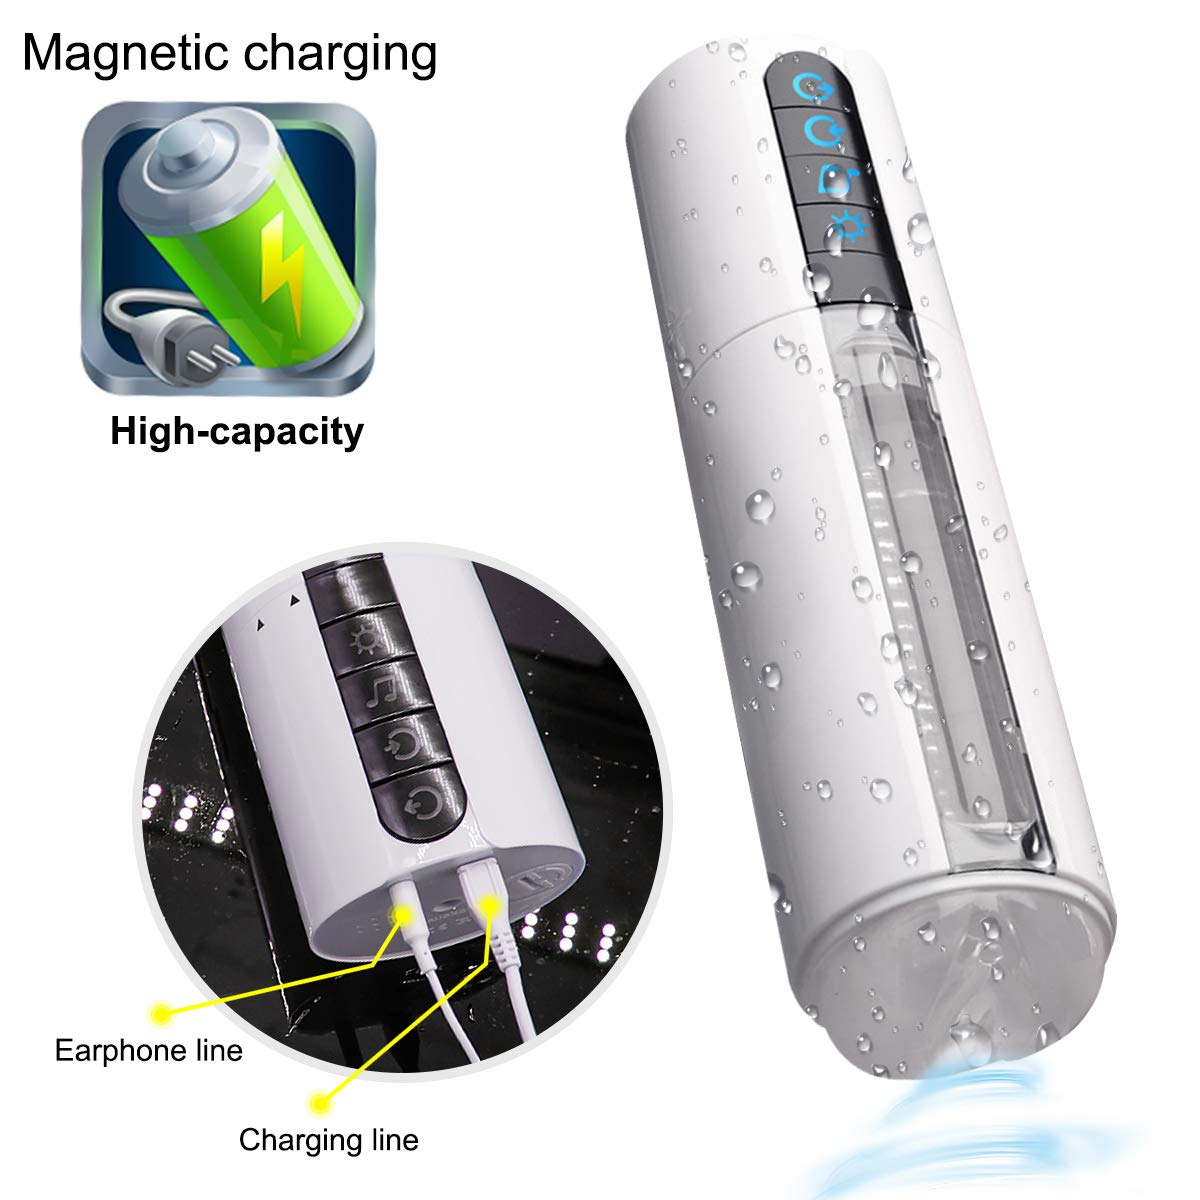 USB Rechargeable ??utomatical ssfucking White Rotating ?ircraft Enhancement Easy Clean High Tease Sièx Toys for Man Waterproof Exercise Bands Flexible MedicalGrade Silicone Summer Slipper